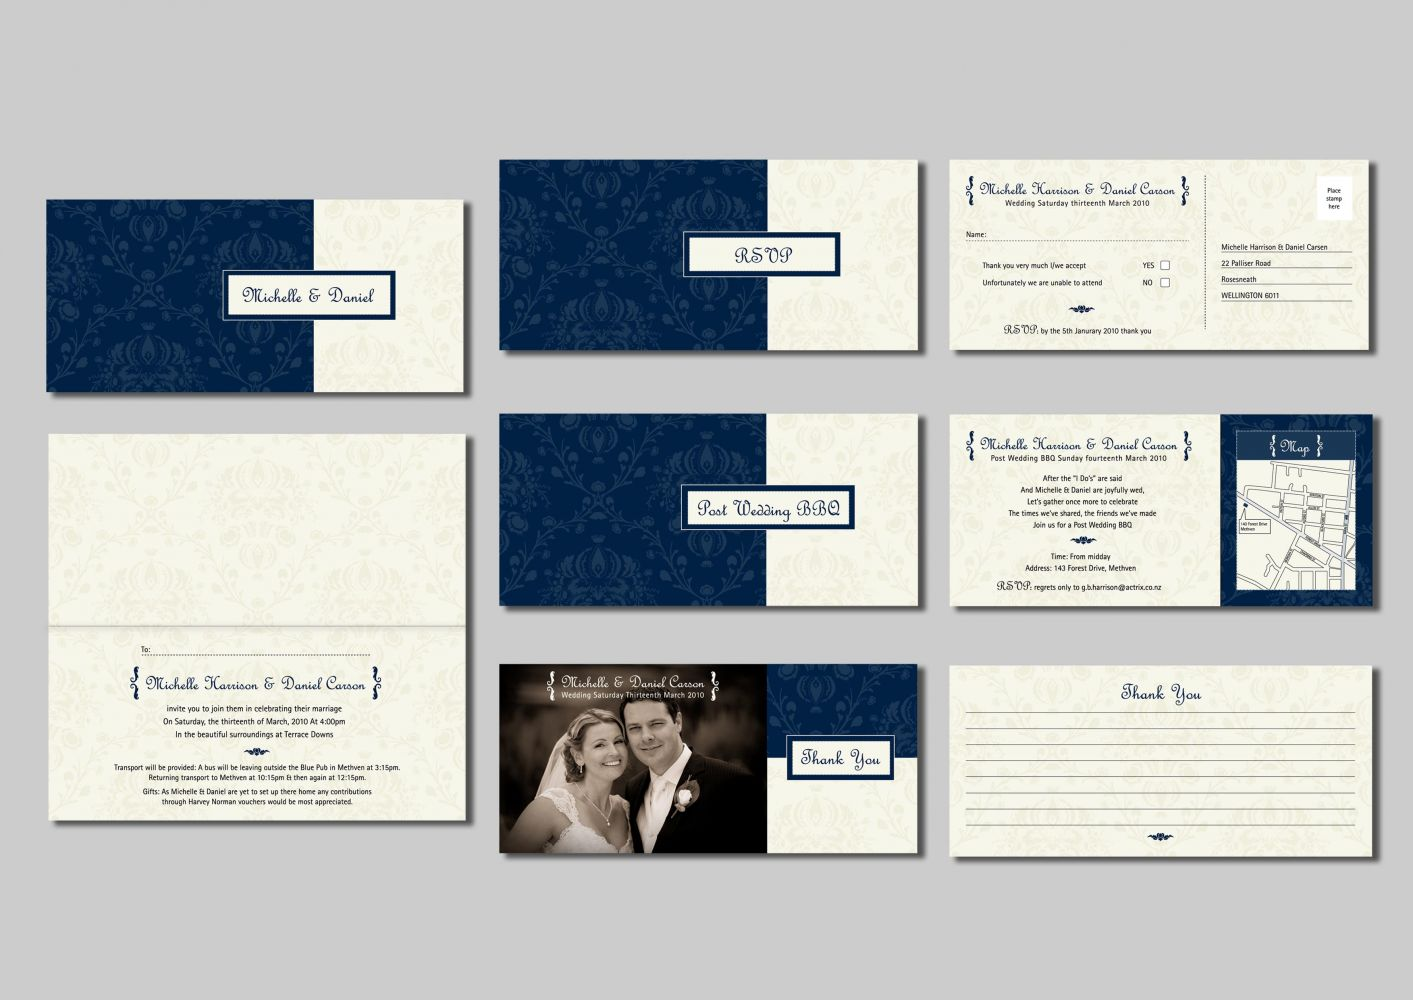 Wedding Stationery Michelle & Daniel